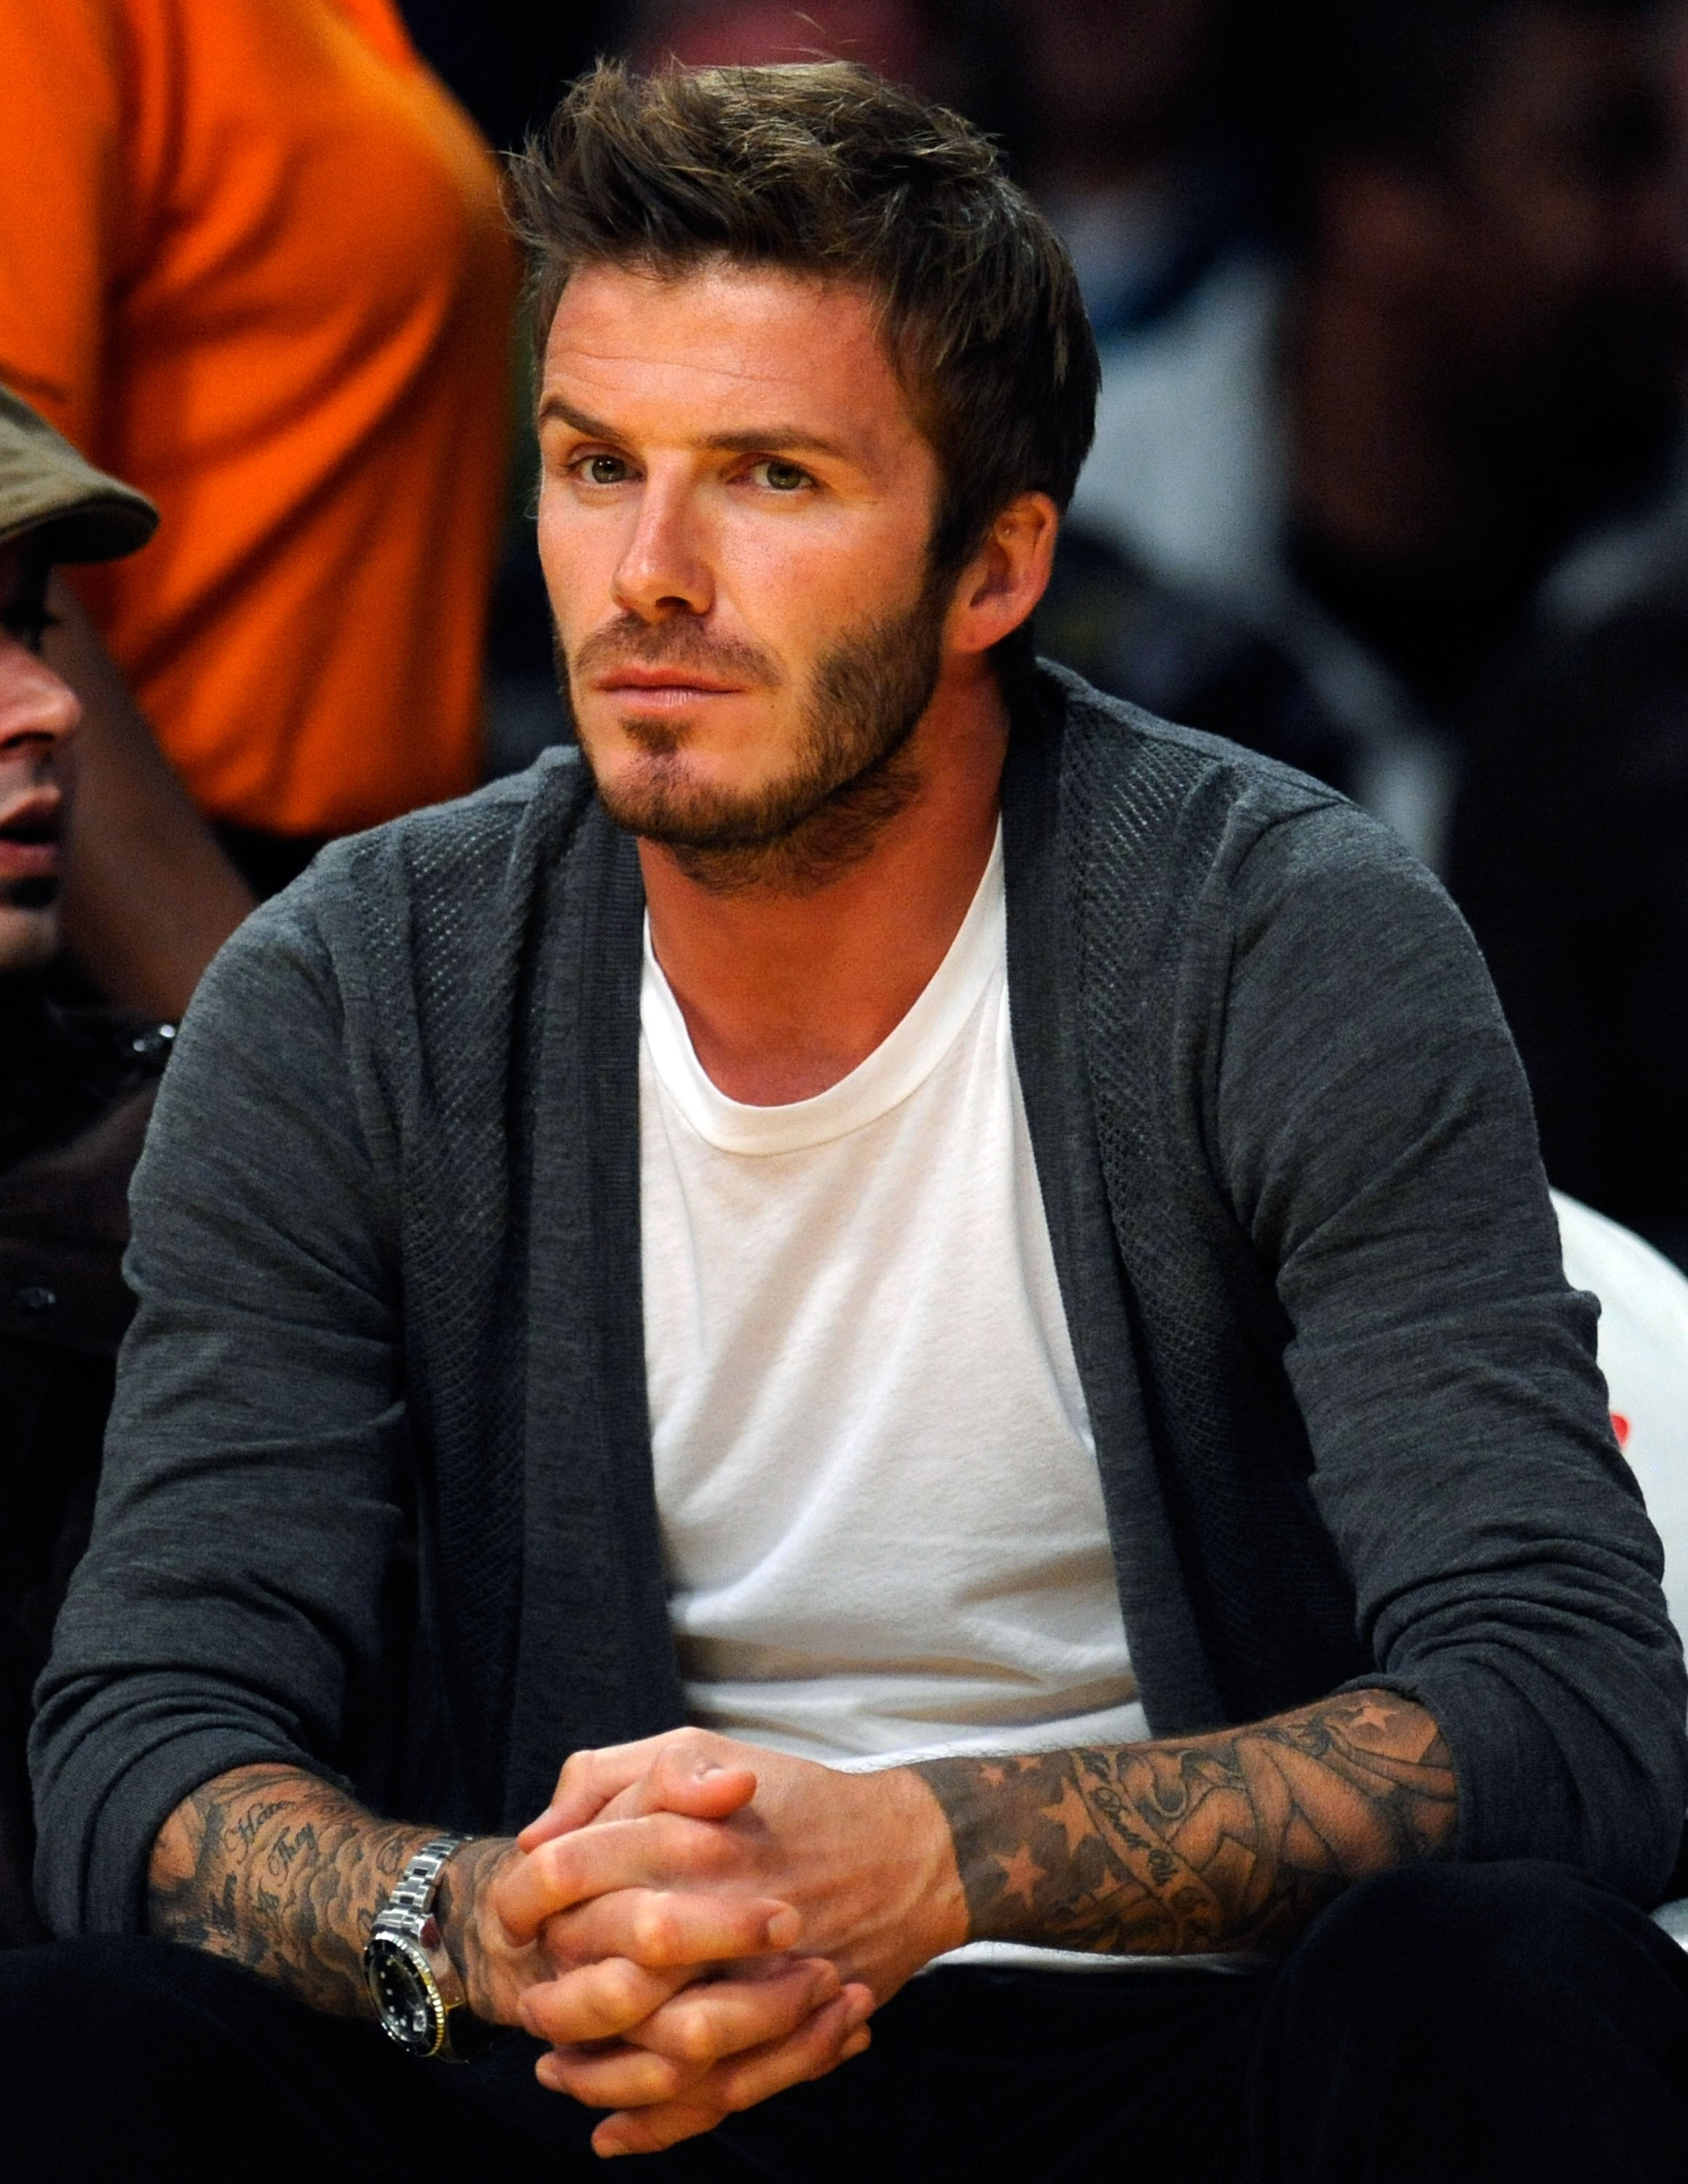 Why Spurs Might Want David Beckham